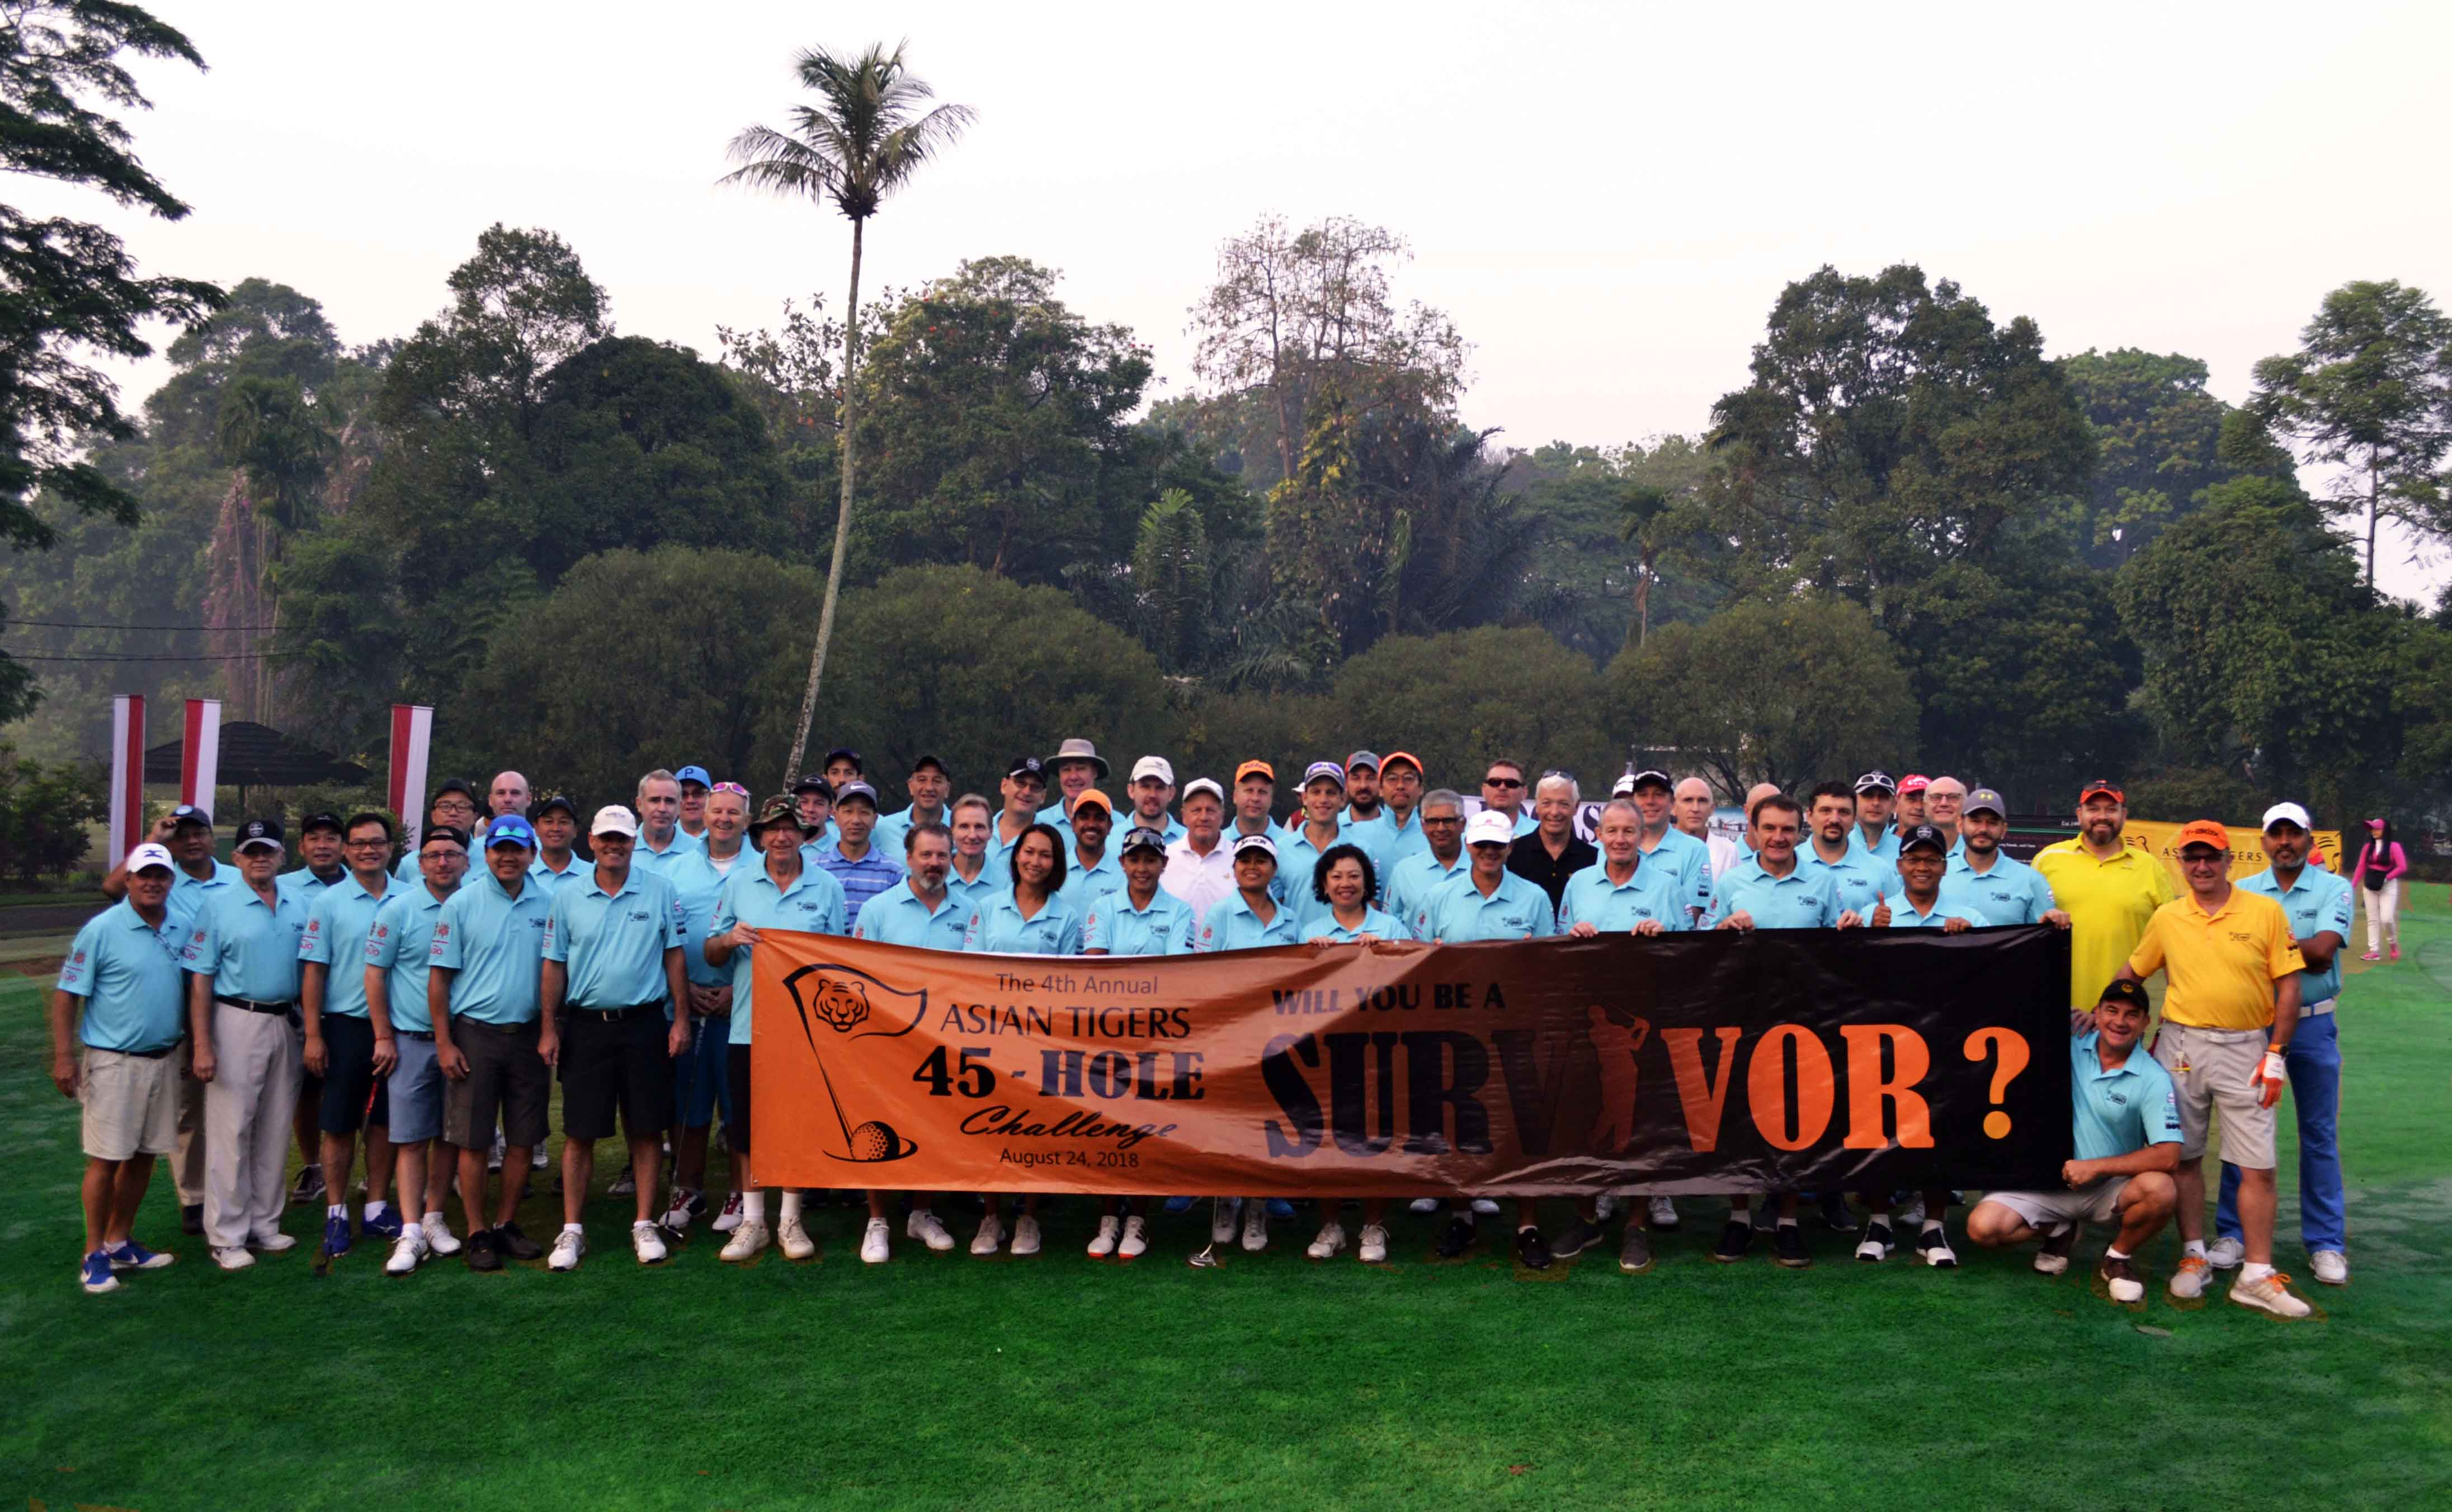 Competitors at the 4th annual 45-hole golf challenge